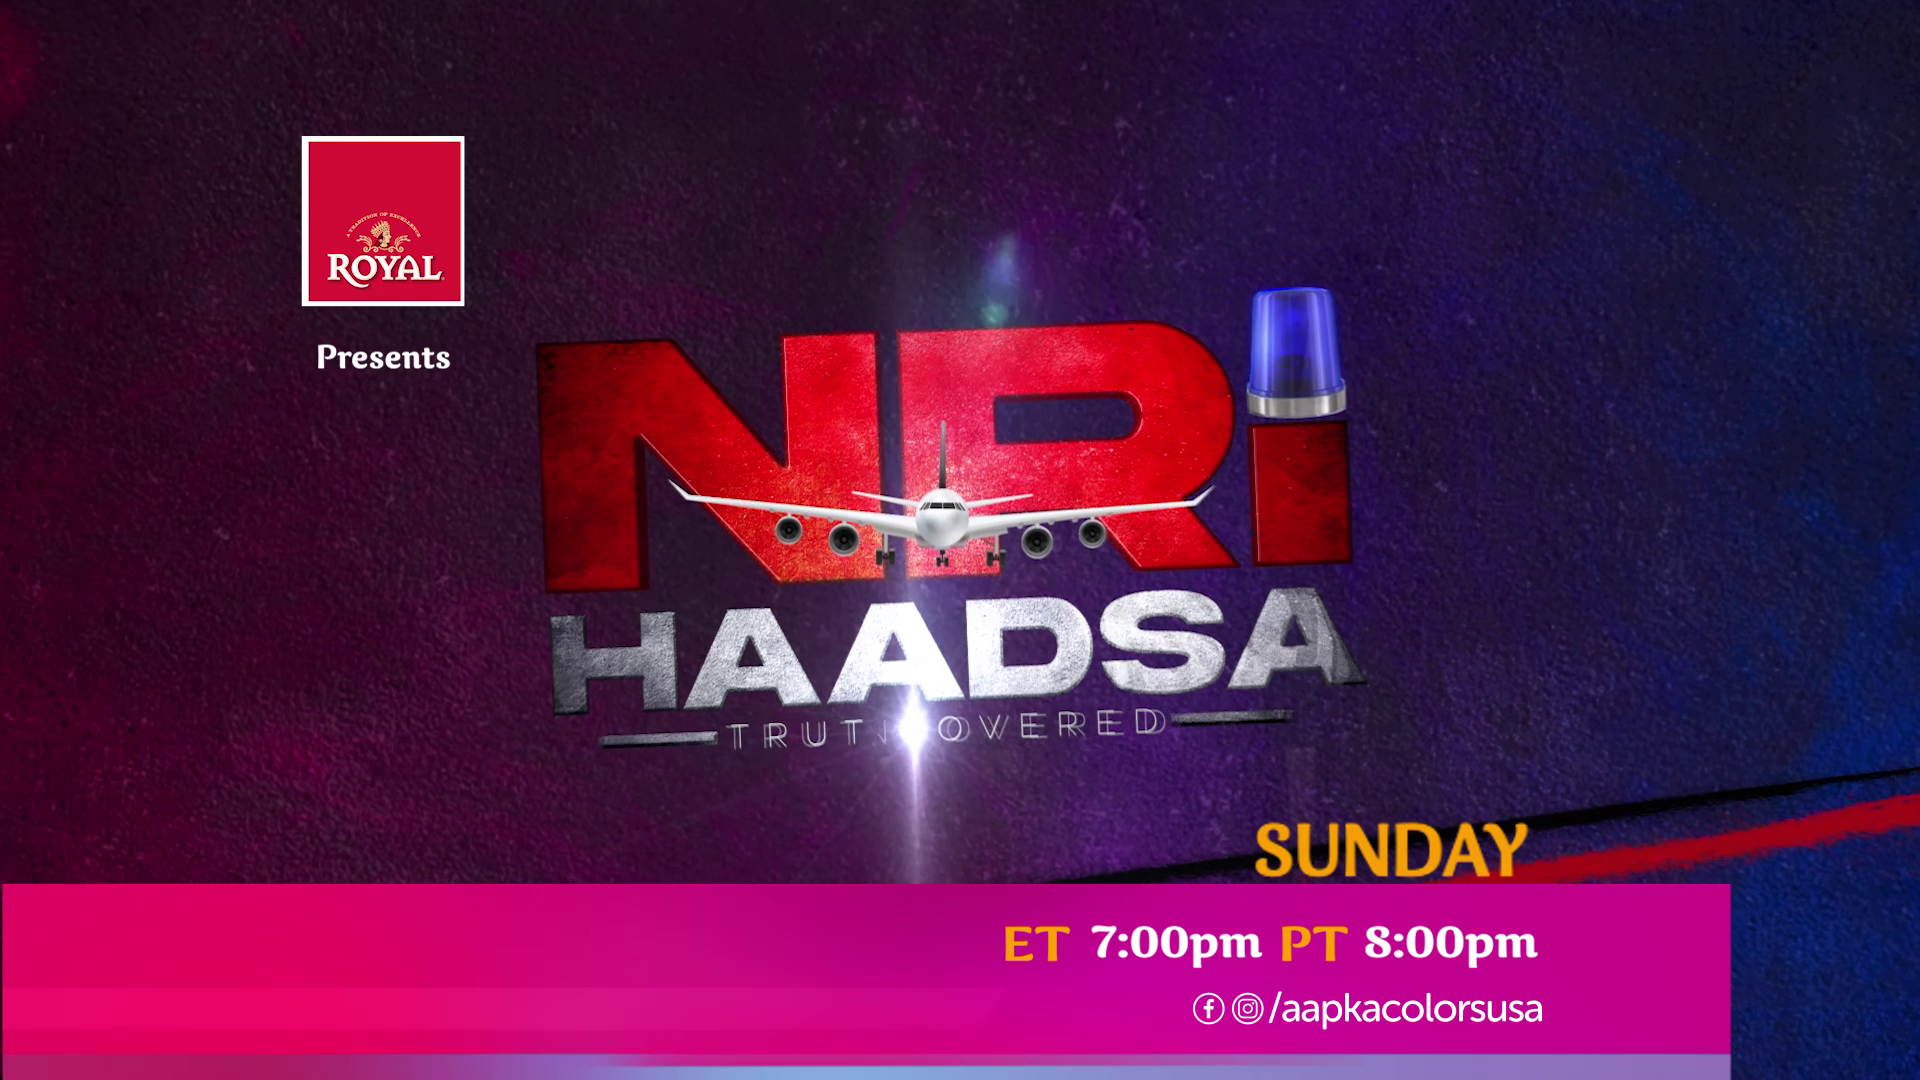 Watch NRI Haadsa Sunday ET 7:00pm PT 8:00pm on Aapkacolorsusa